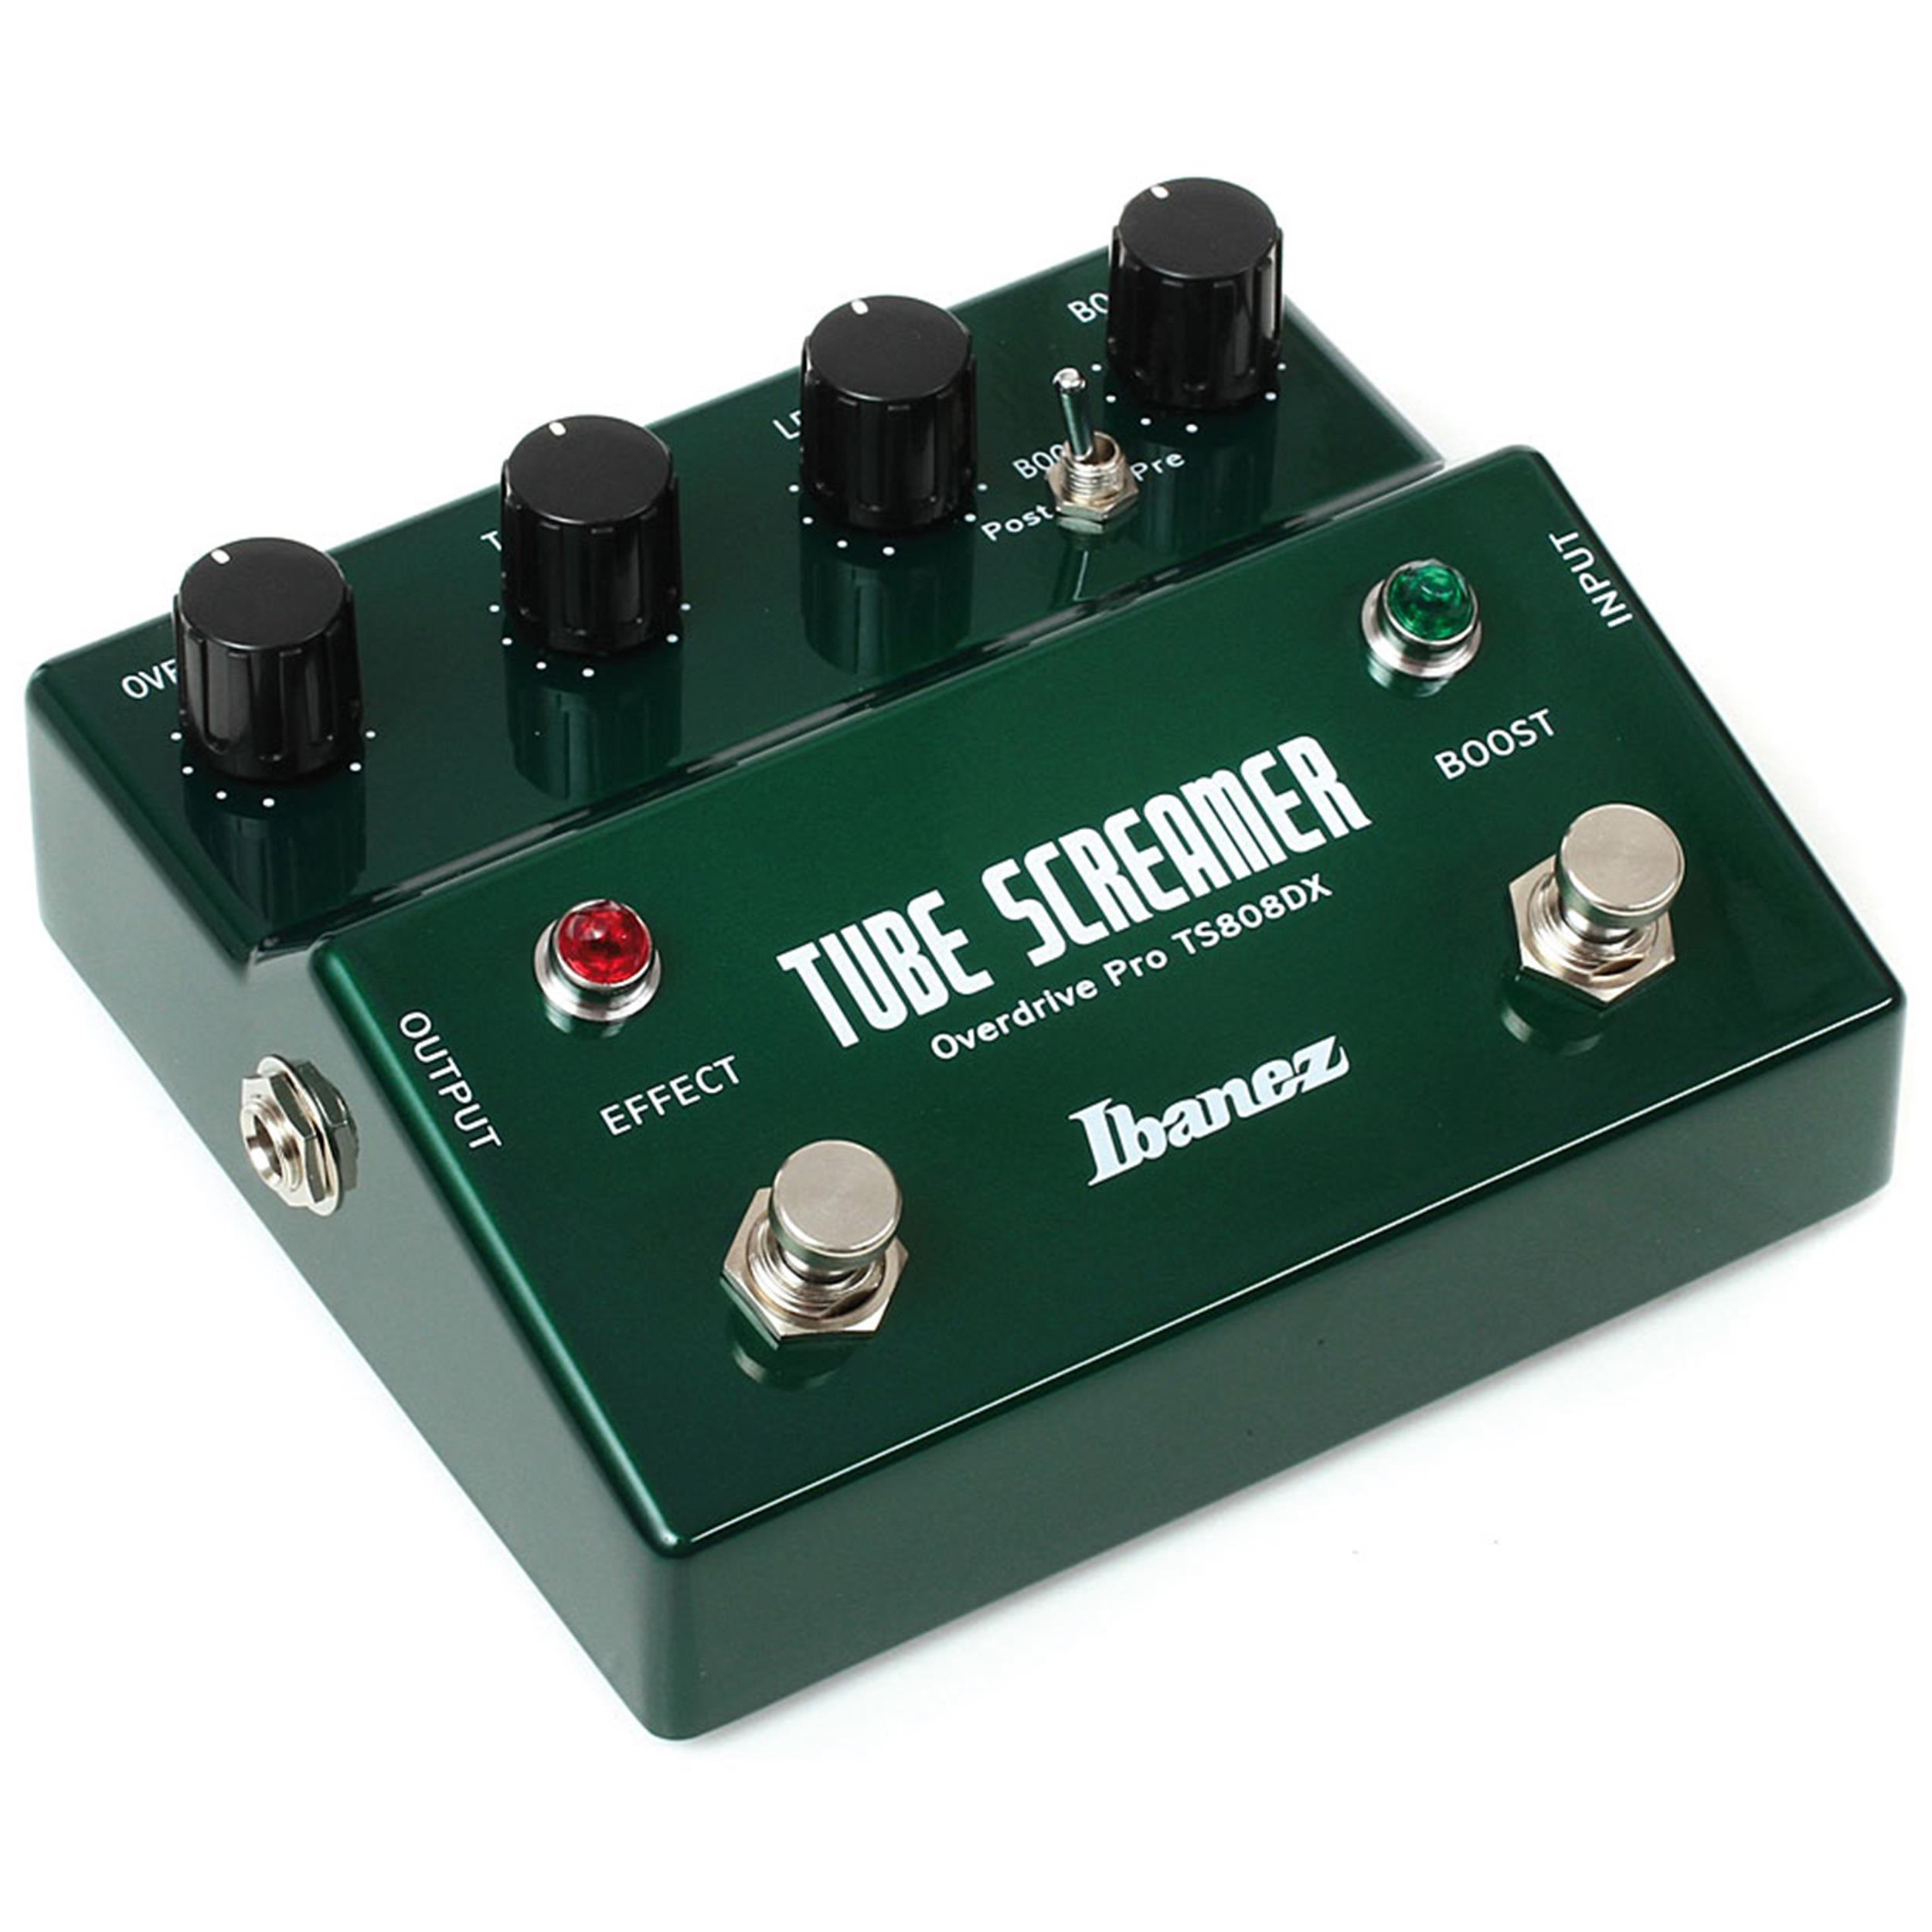 IBANEZ-TS808DX-Tube-Screamer-Overdrive-Booster-B-STOCK-sku-15483